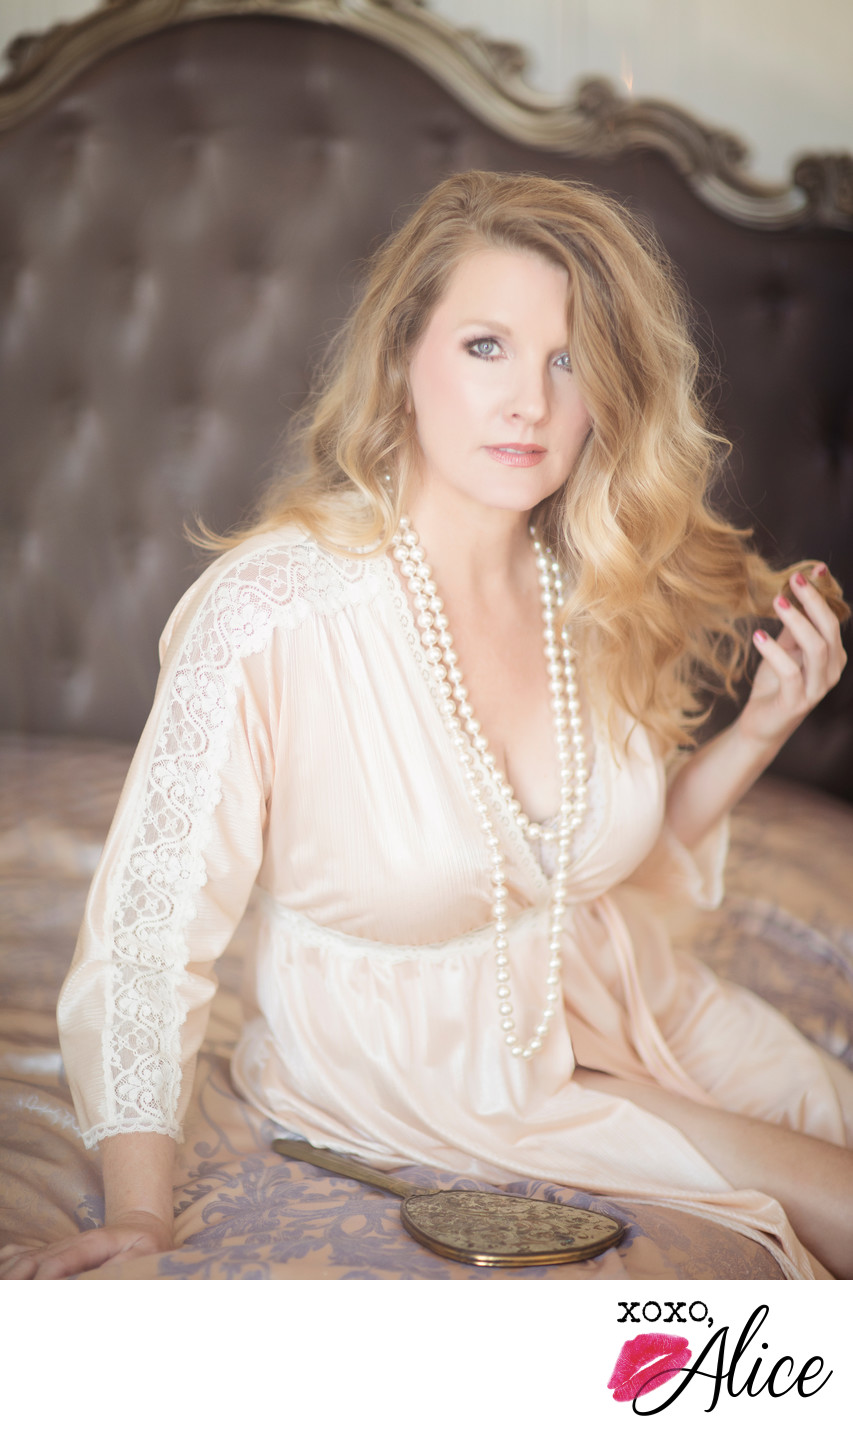 boudoir photography women all ages glamorous